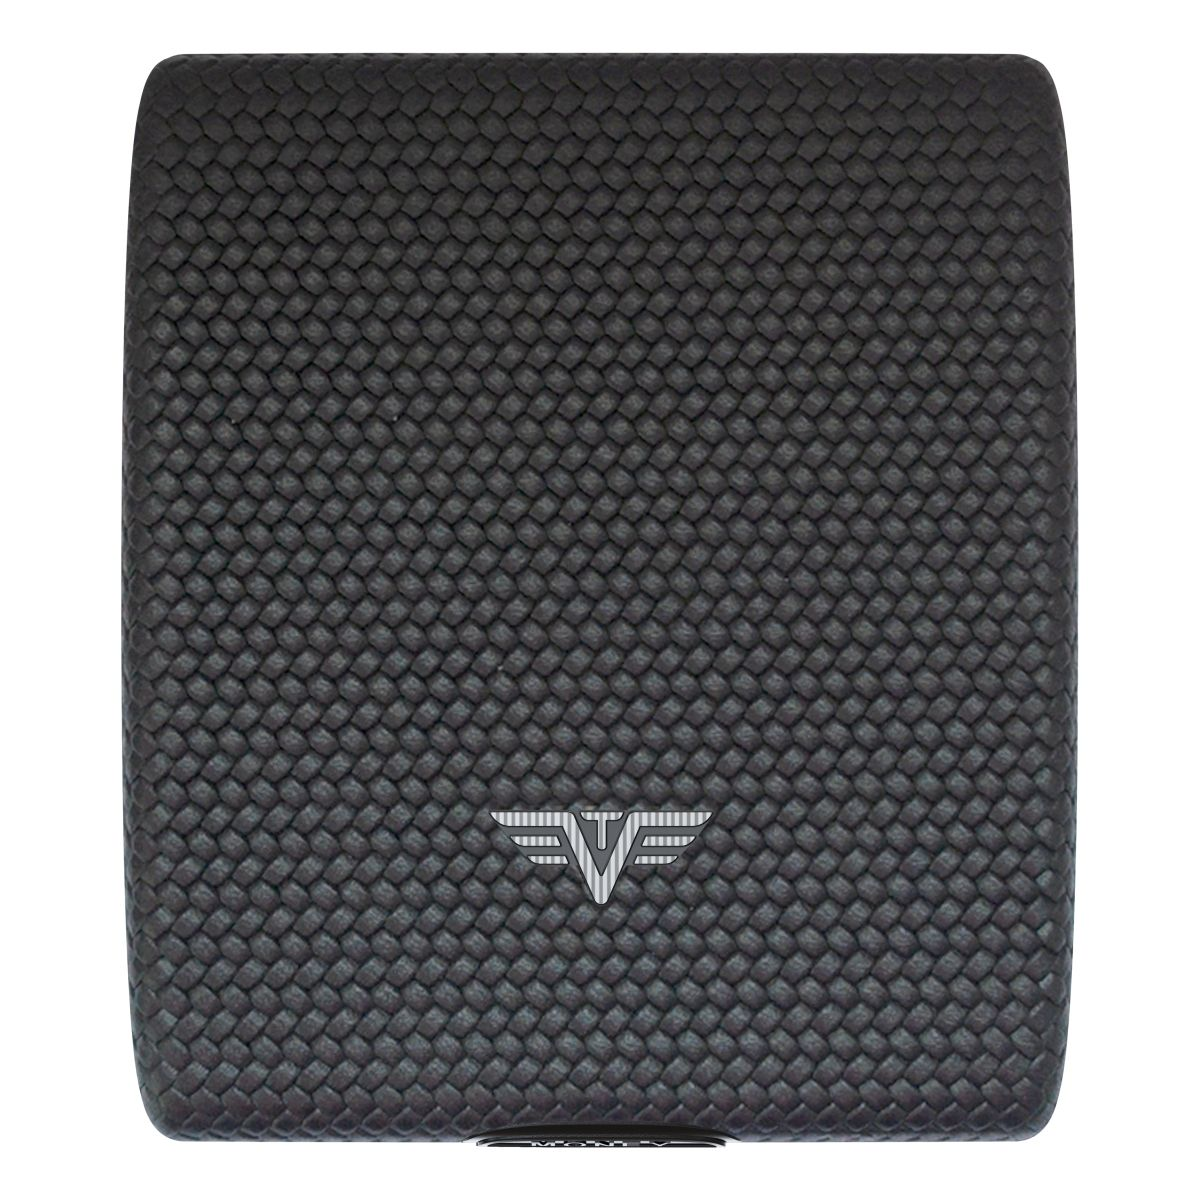 TRU VIRTU Aluminum Wallet Beluga - Money & Cards - Leather Line - Carbon Black